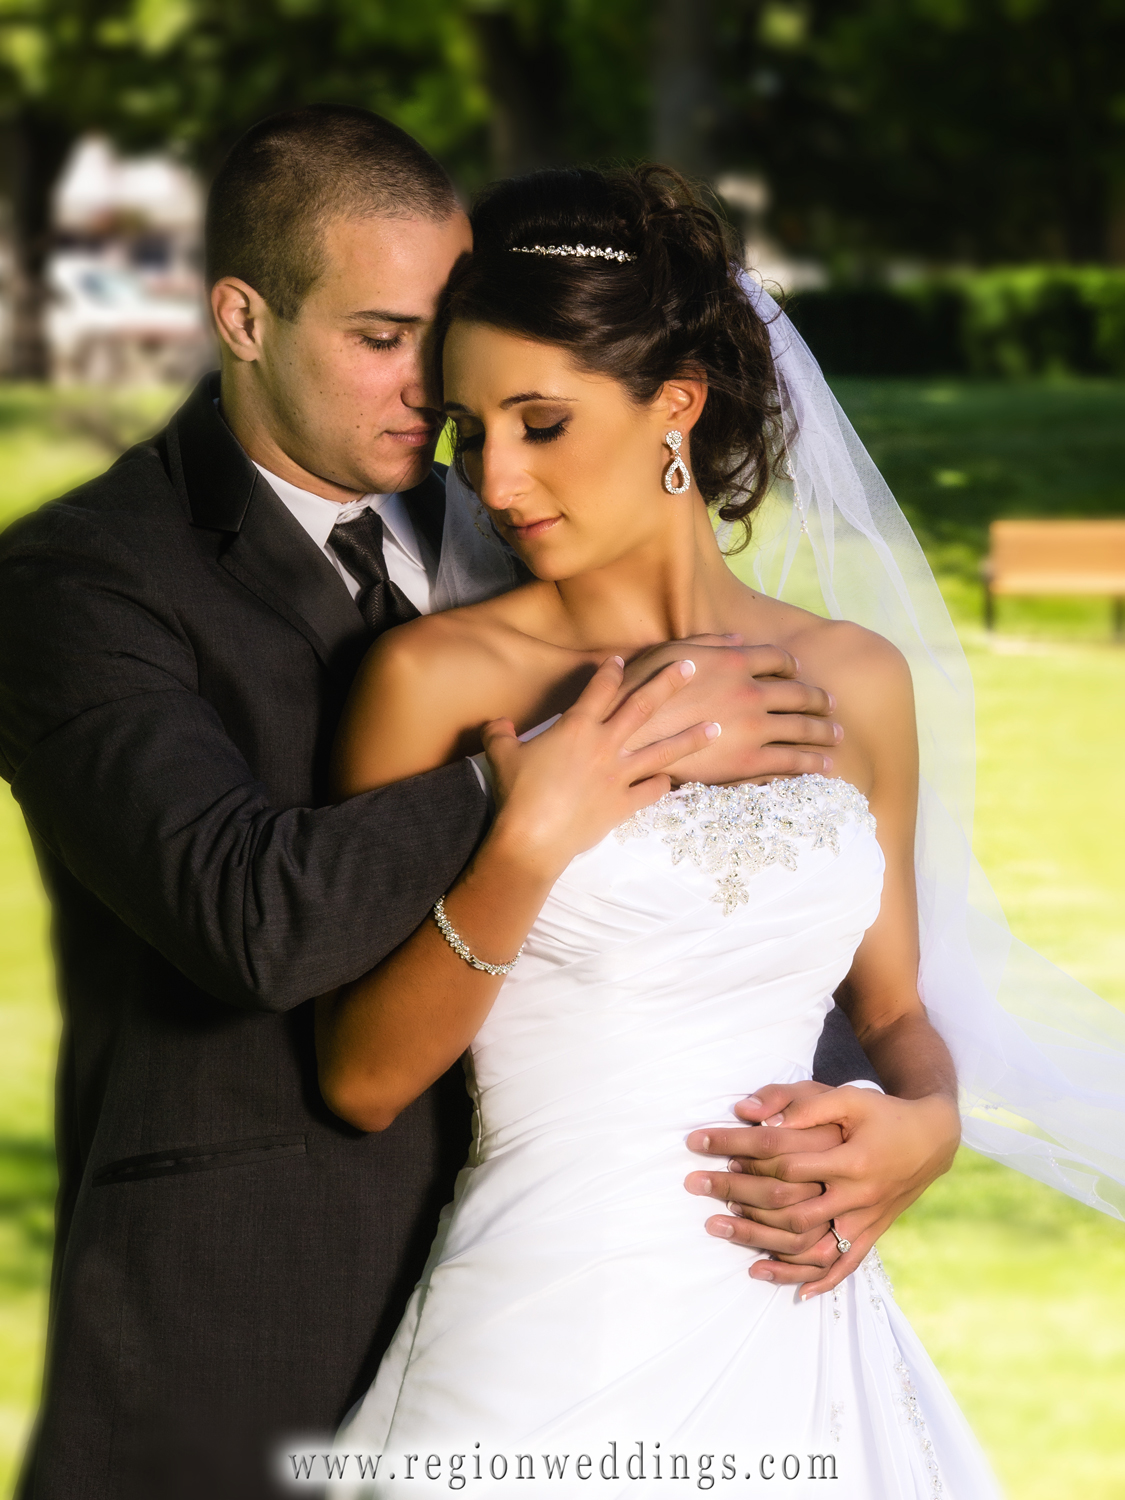 A romantic embrace between bride and groom after their summer wedding ceremony.